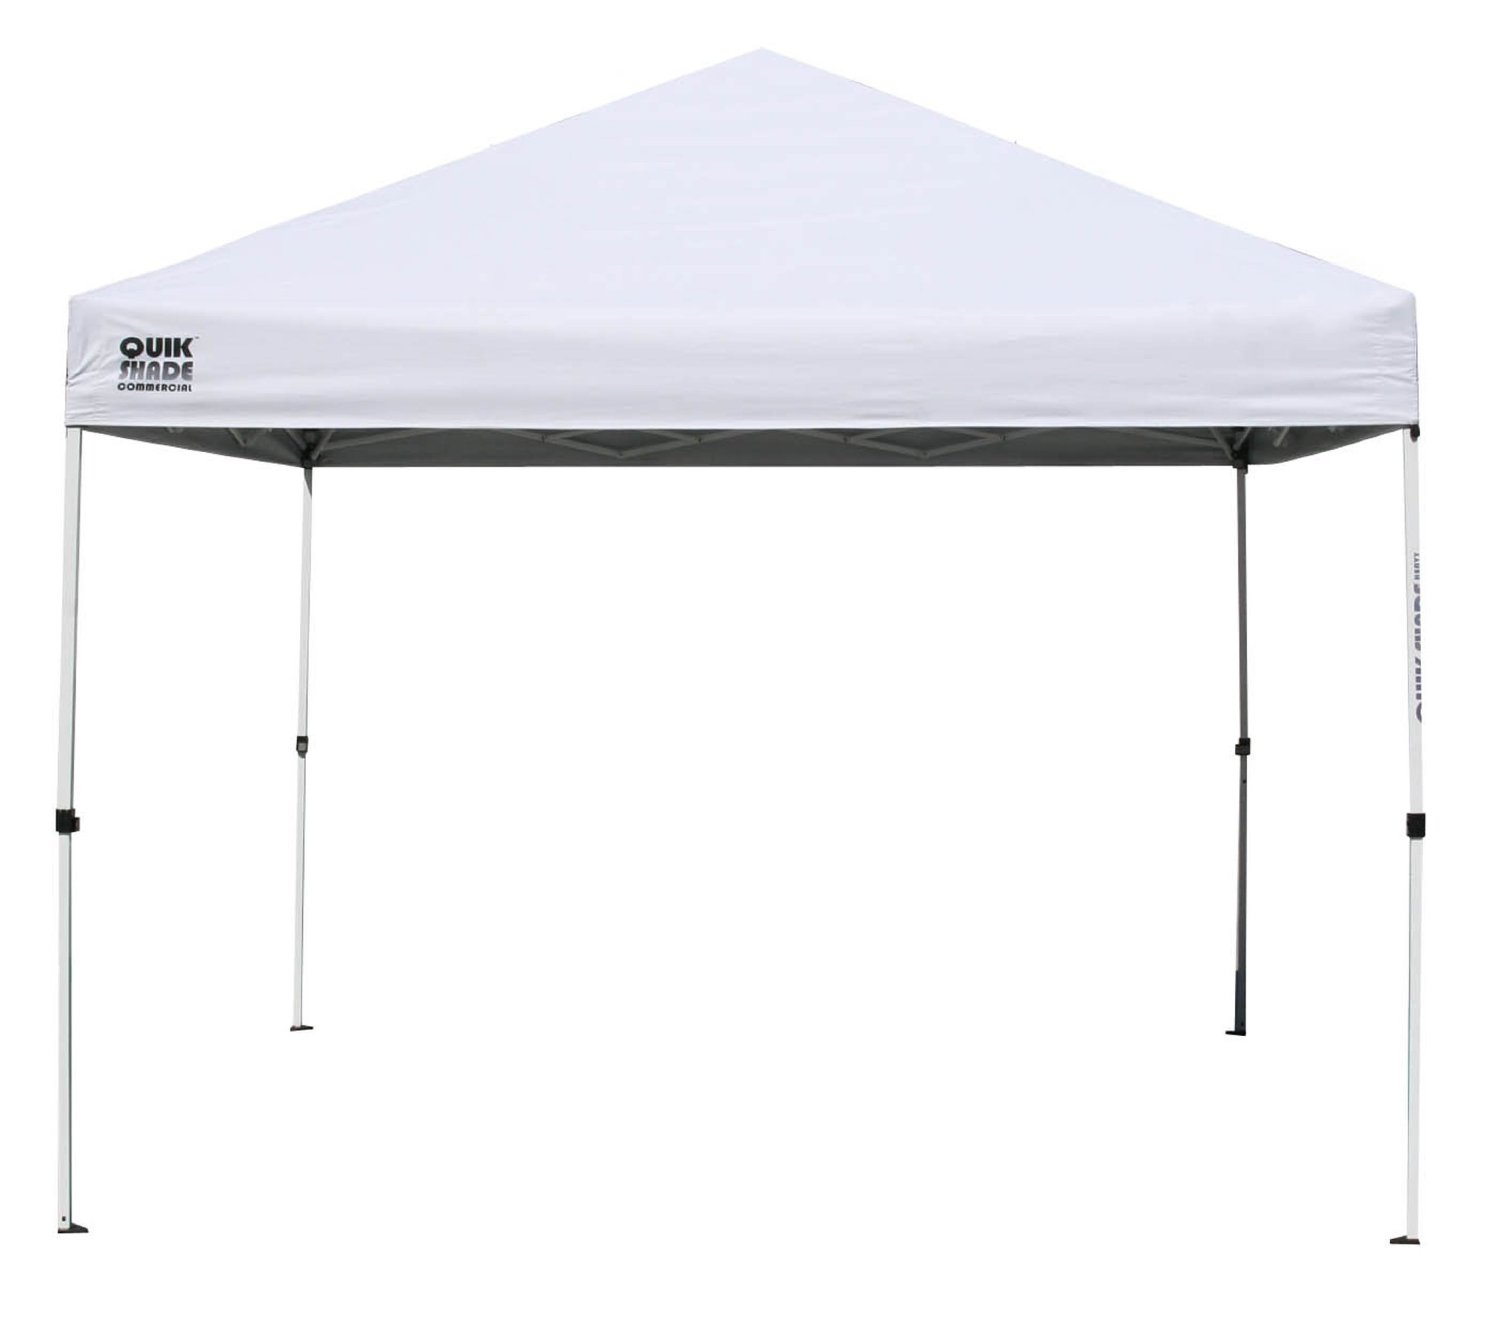 Quik Shade Commercial 100 with Full Wall Instant Canopy (White), 10 Feet X 10 Feet